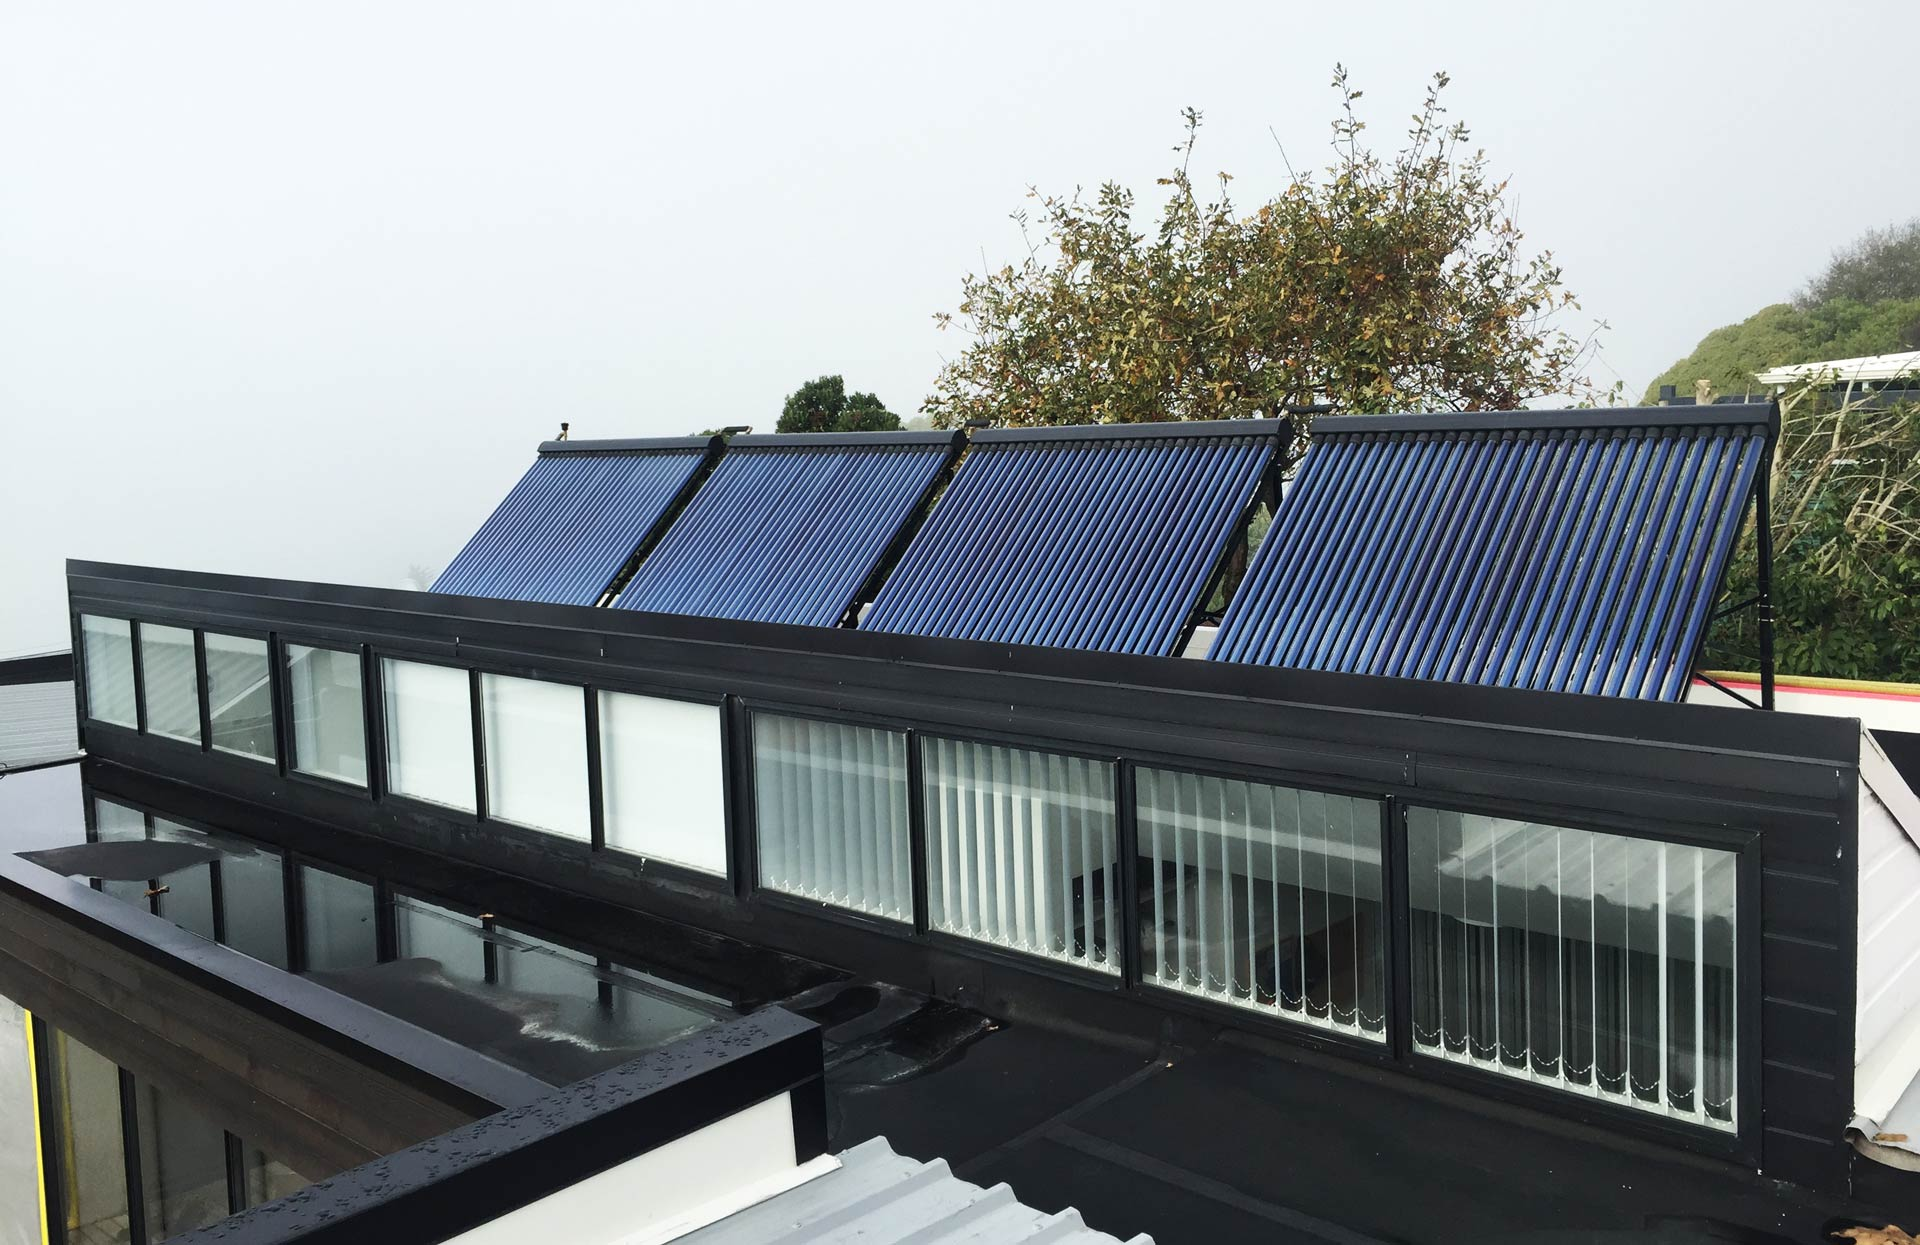 4 solar thermal systems on a roof with 11 windows and black roof